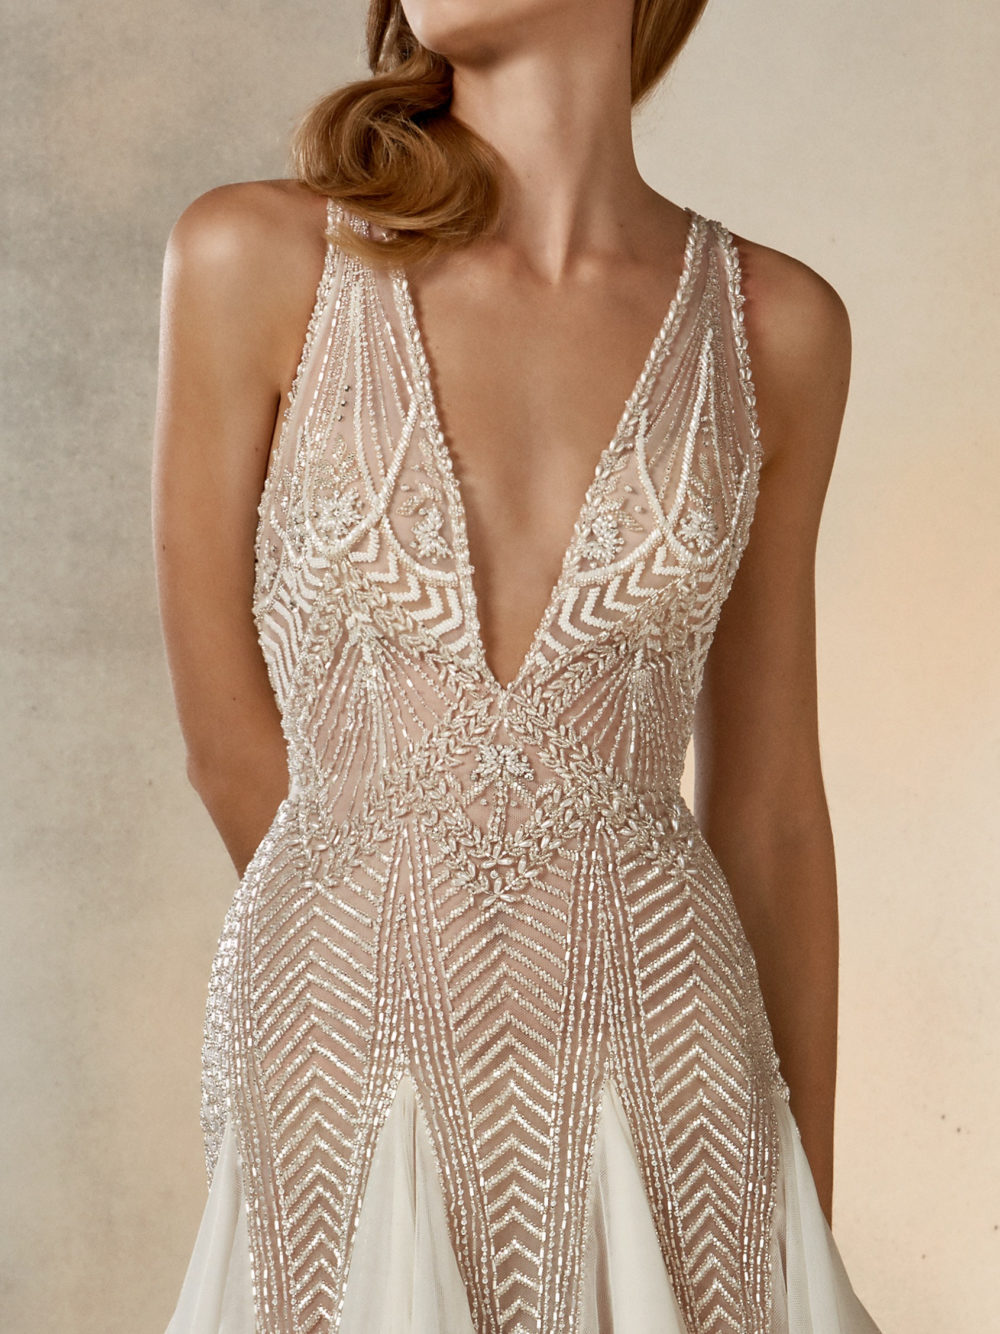 Pronovias Star Dreaming Wedding Gown Dress 2020 Atelier Collection Front